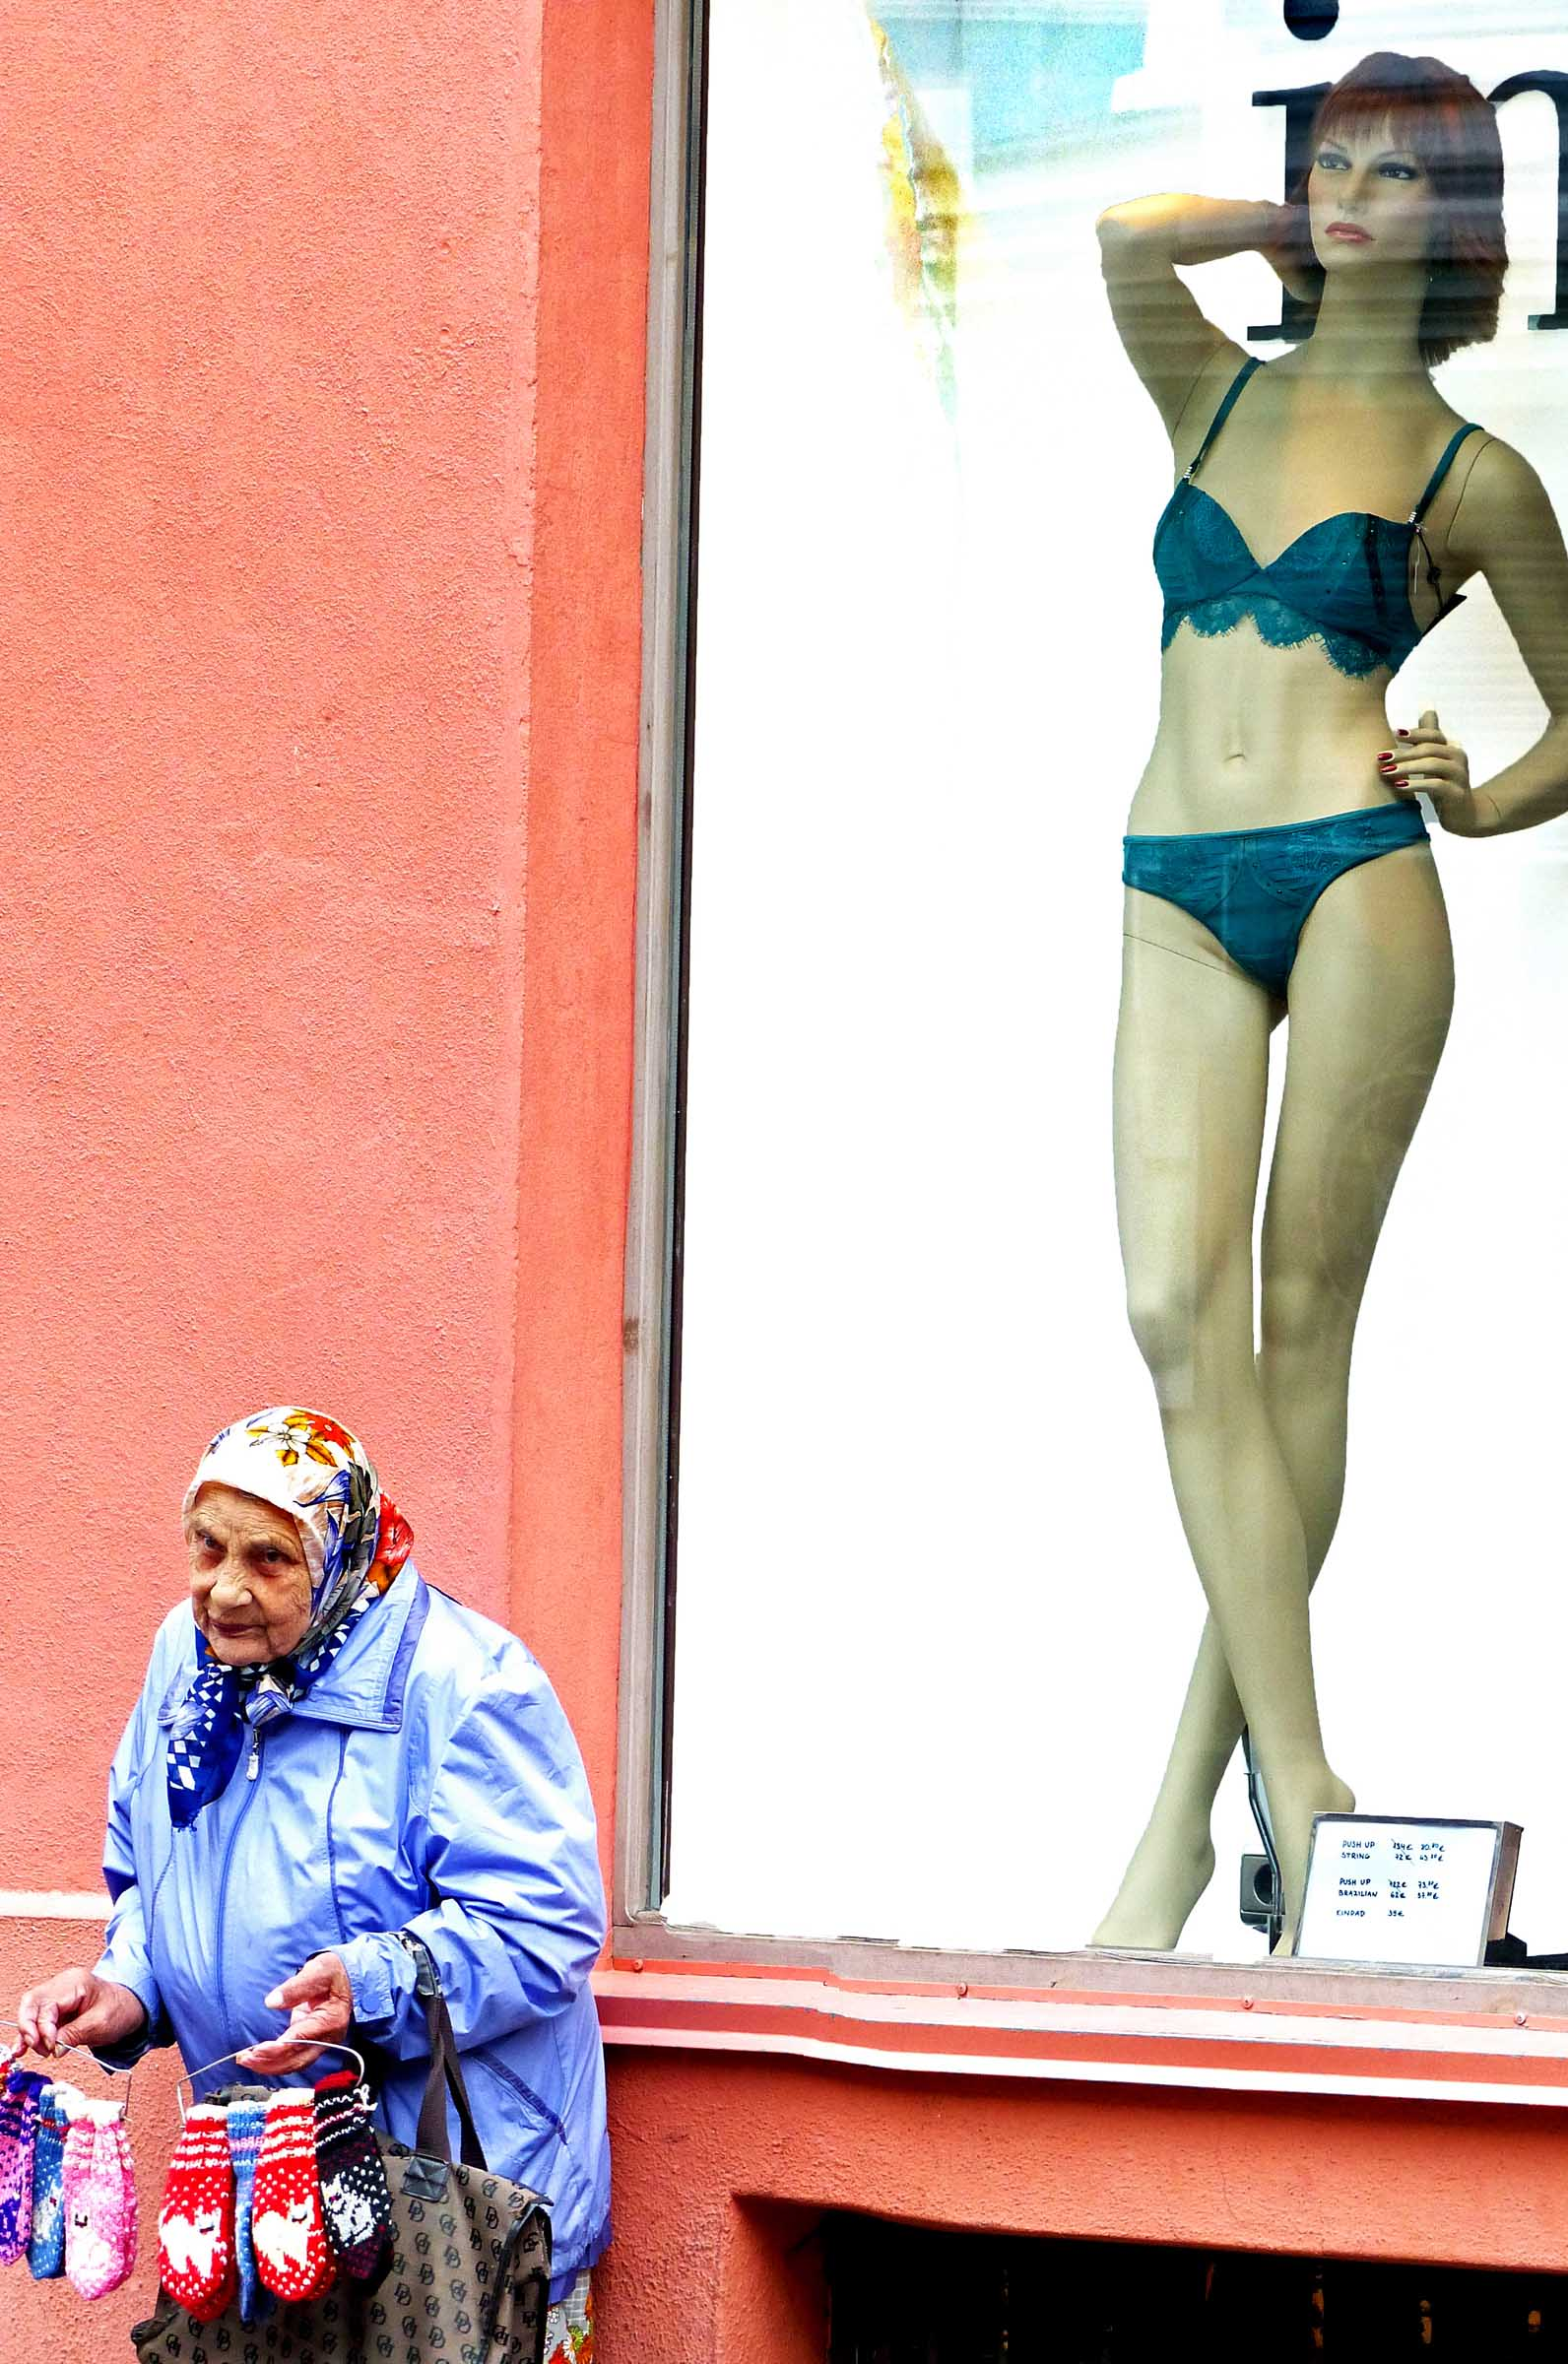 Old lady displaying knitted goods in front of window with manequin modelling underwear